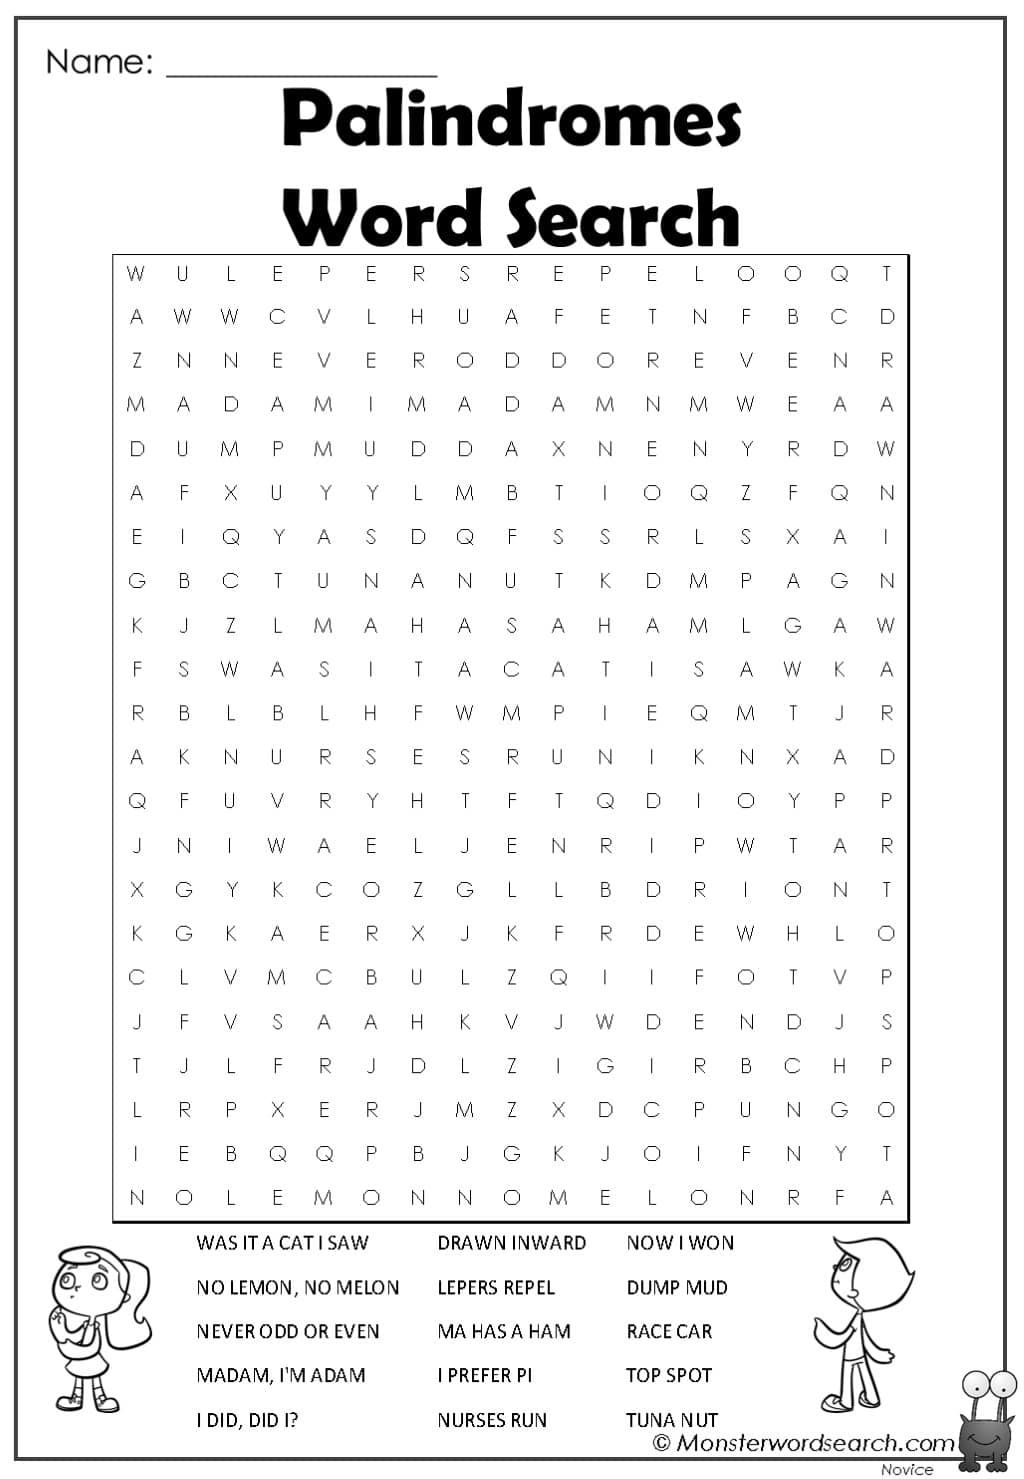 Palindromes Word Search In